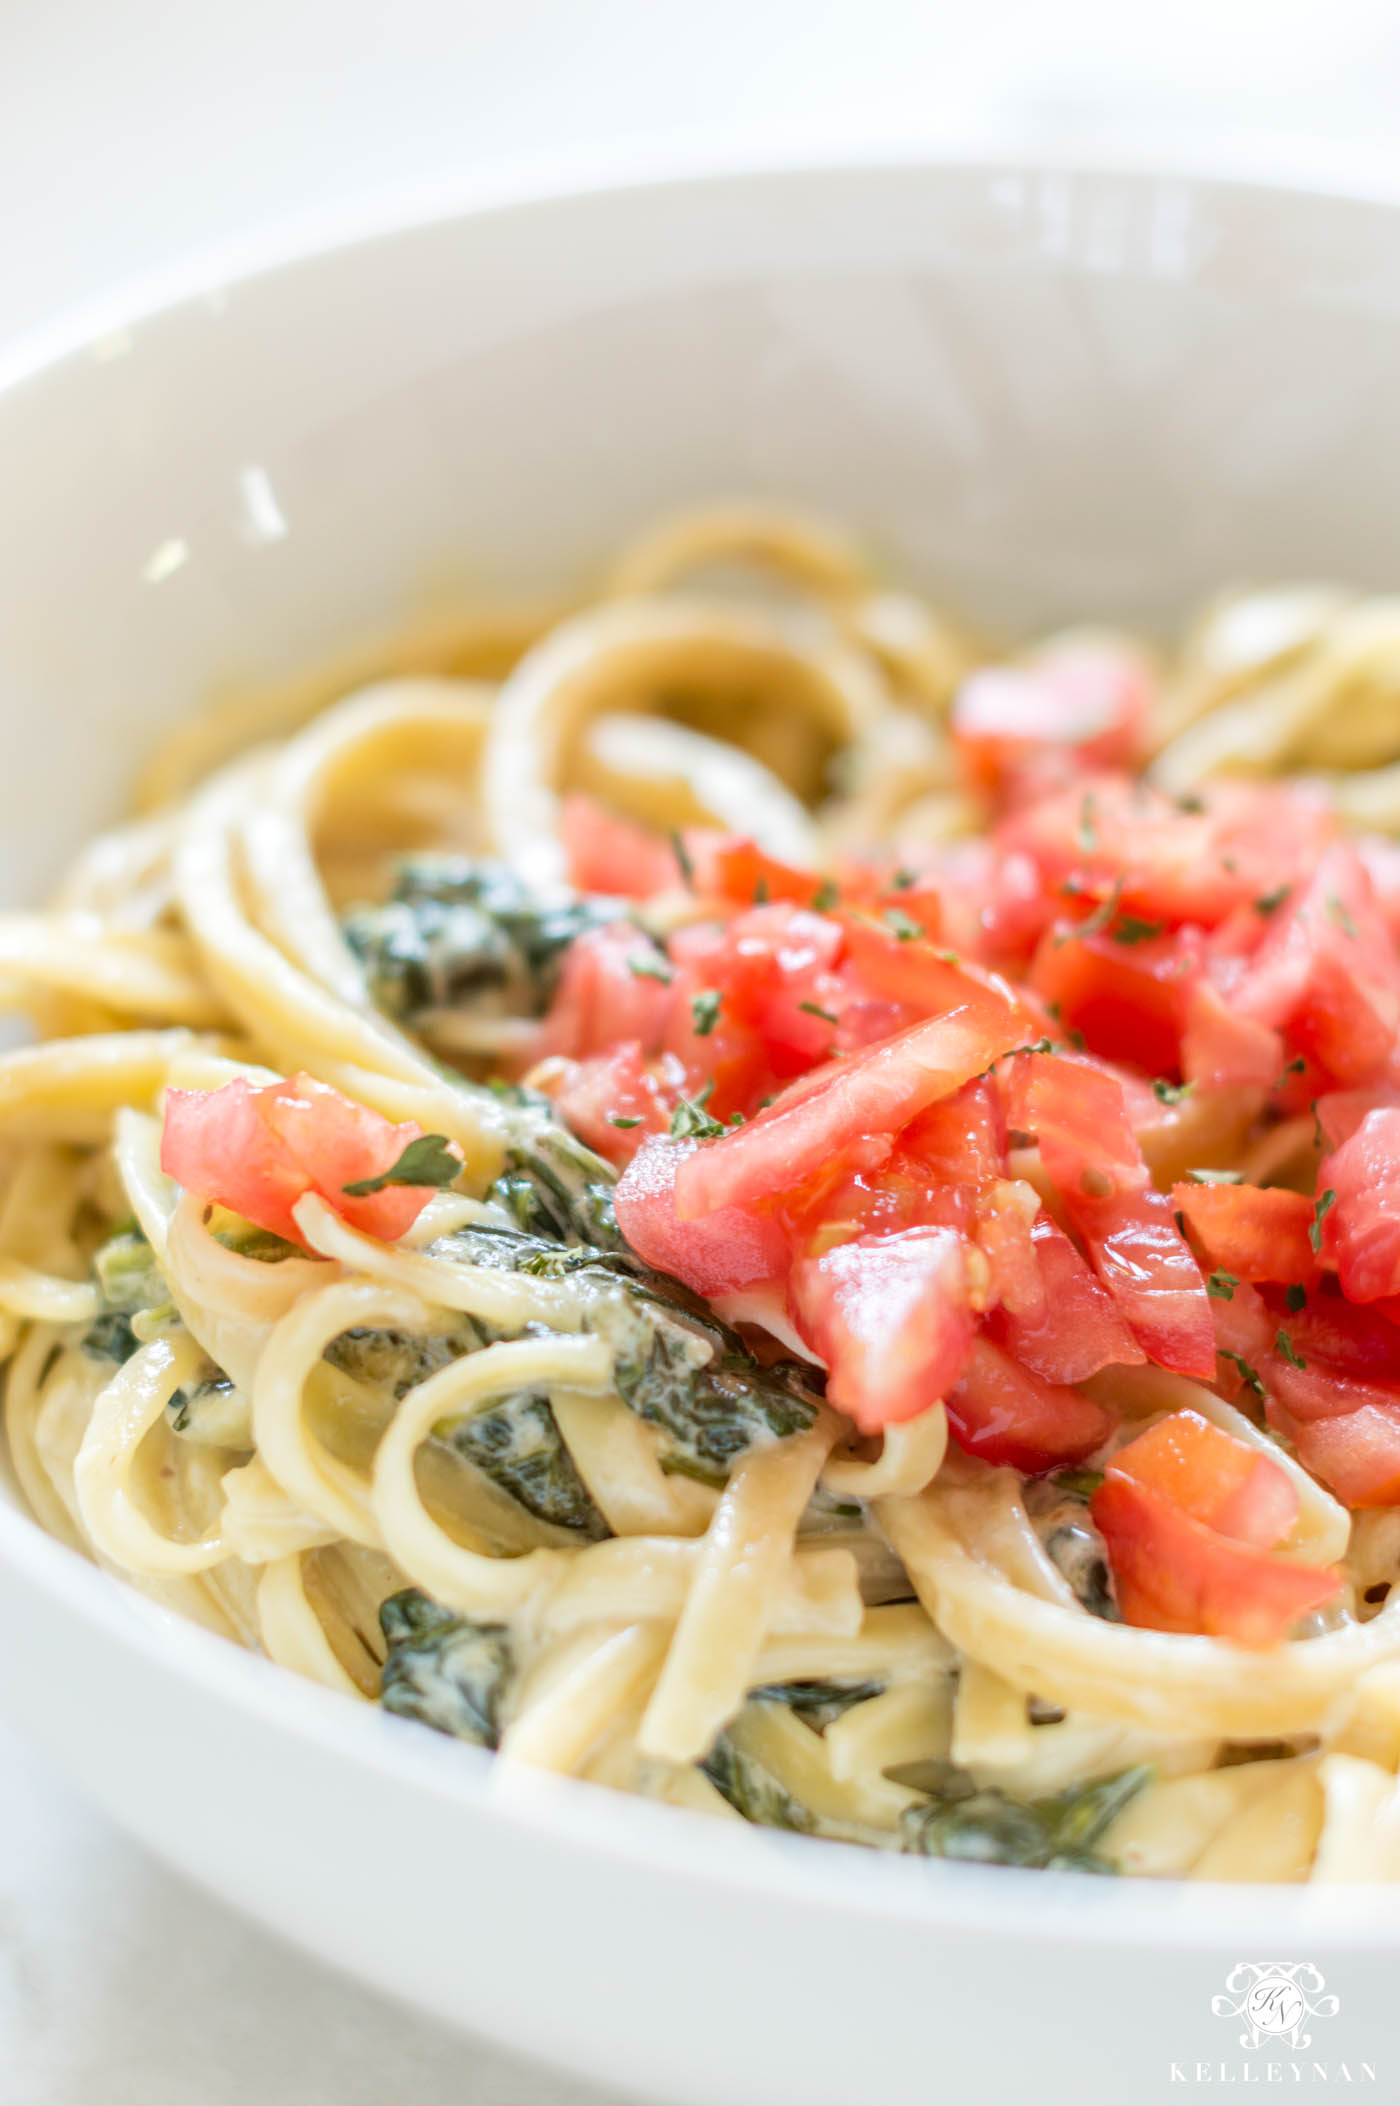 Easy Spinach Fettucine Alfredo Recipe for Weeknight Dinners